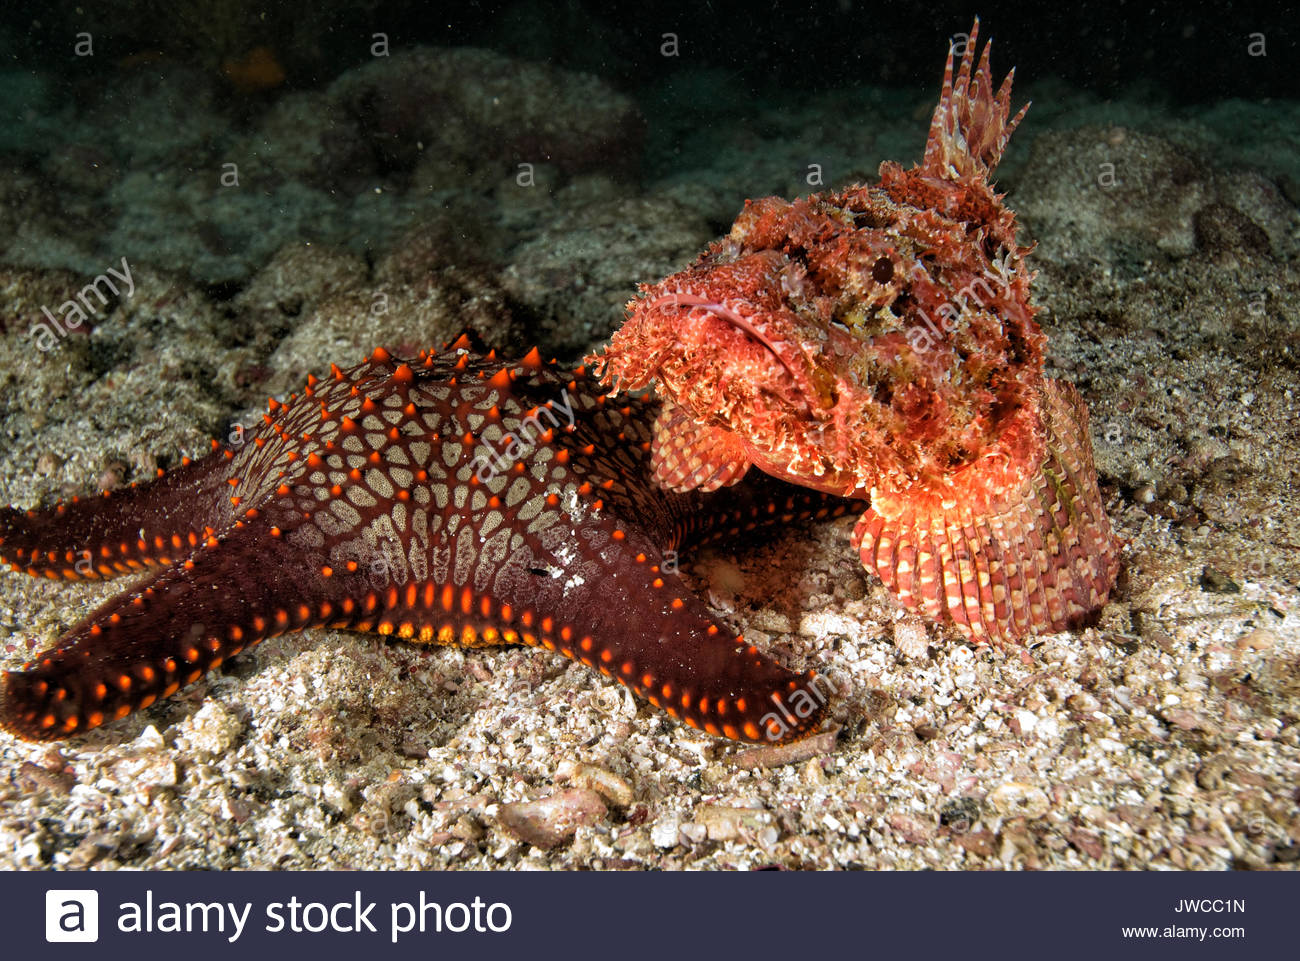 A rockfish with a star fish. - Stock Image